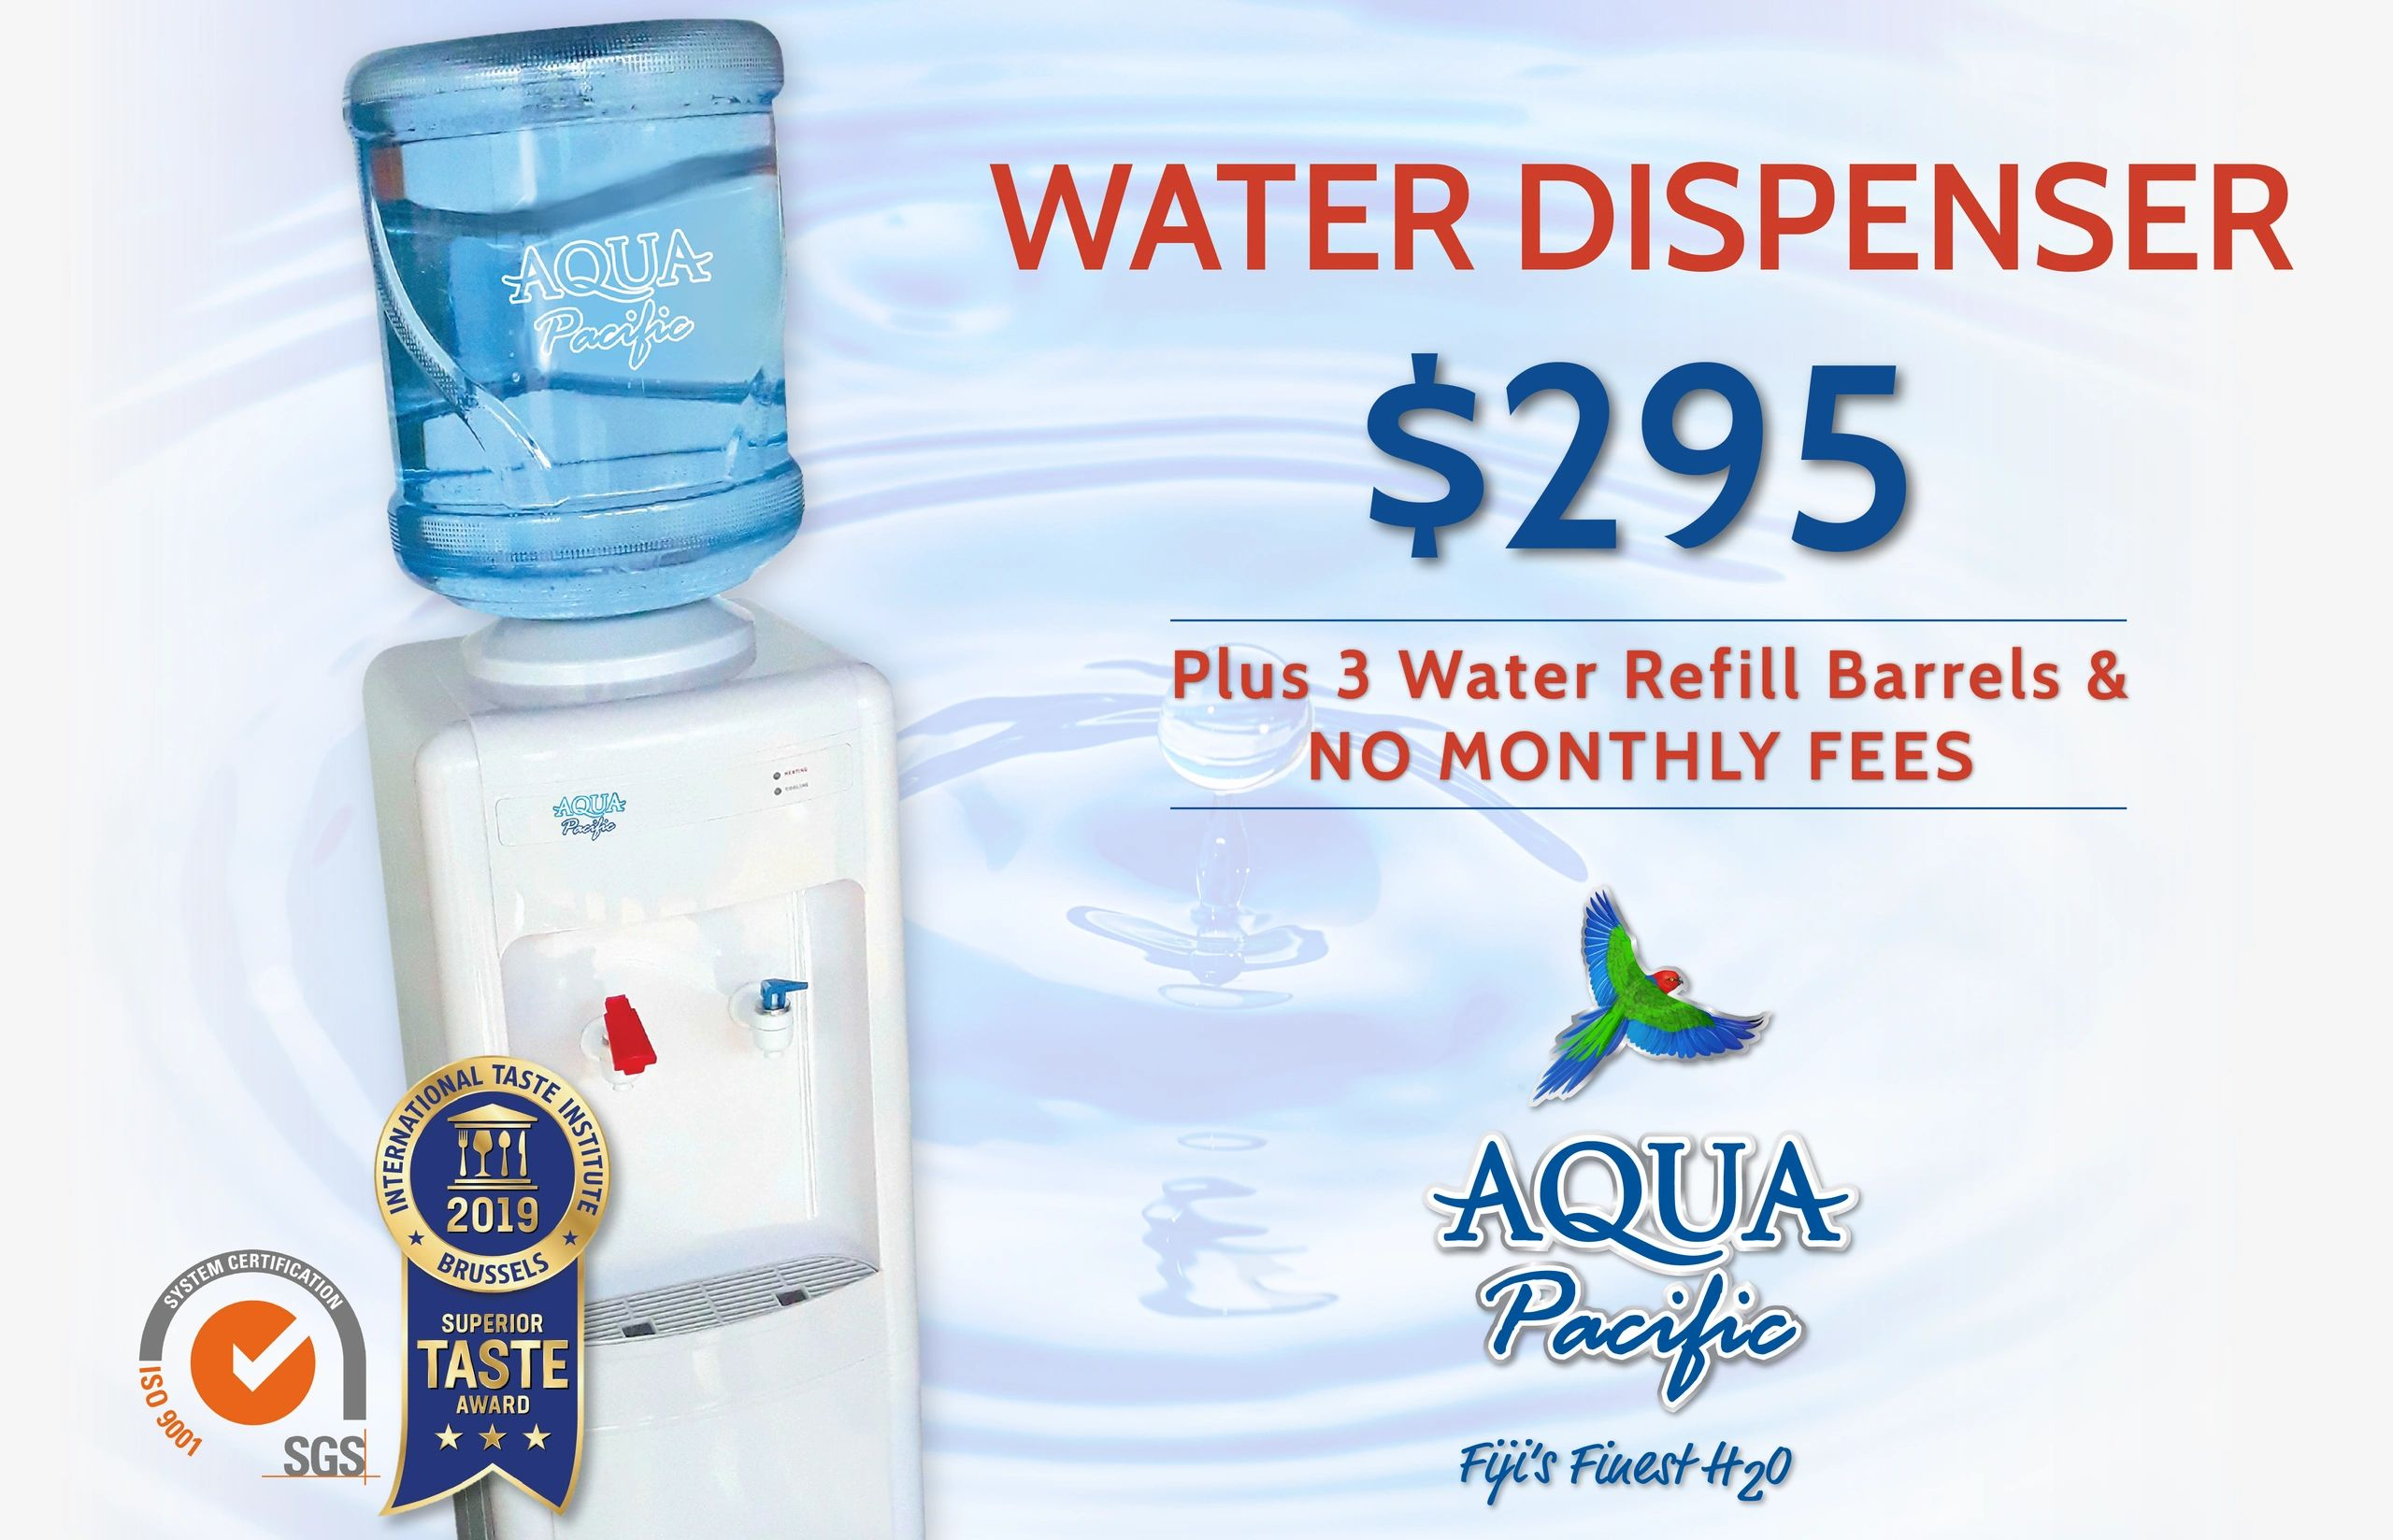 Aqua Pacific Dispenser - Natural Mineral Water on tap. Economical and convenient. Frezco Beverages.